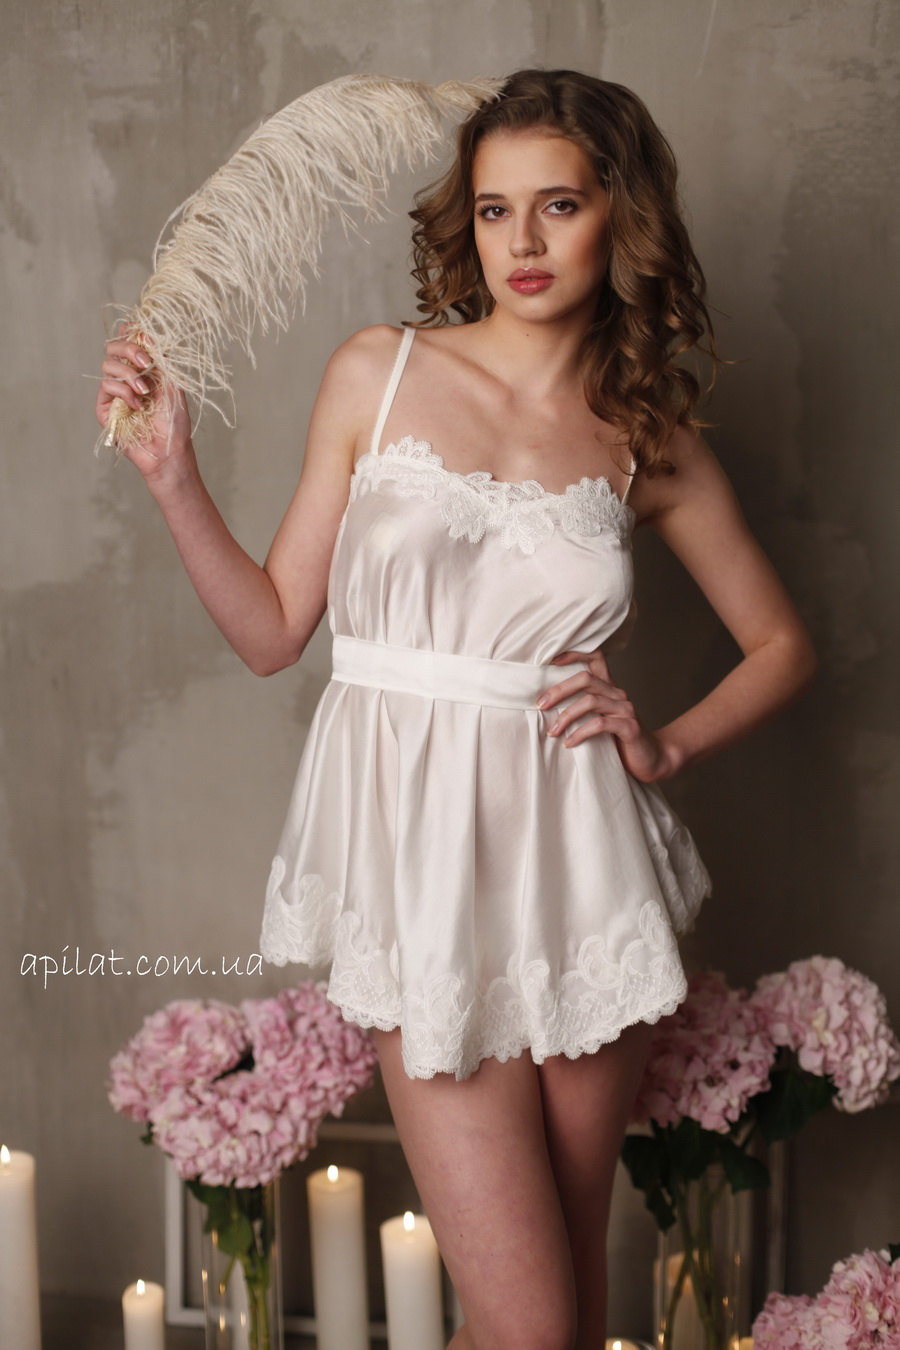 Bridal camisole with lace f8 lingerie nightdress by for Best bra for wedding dress